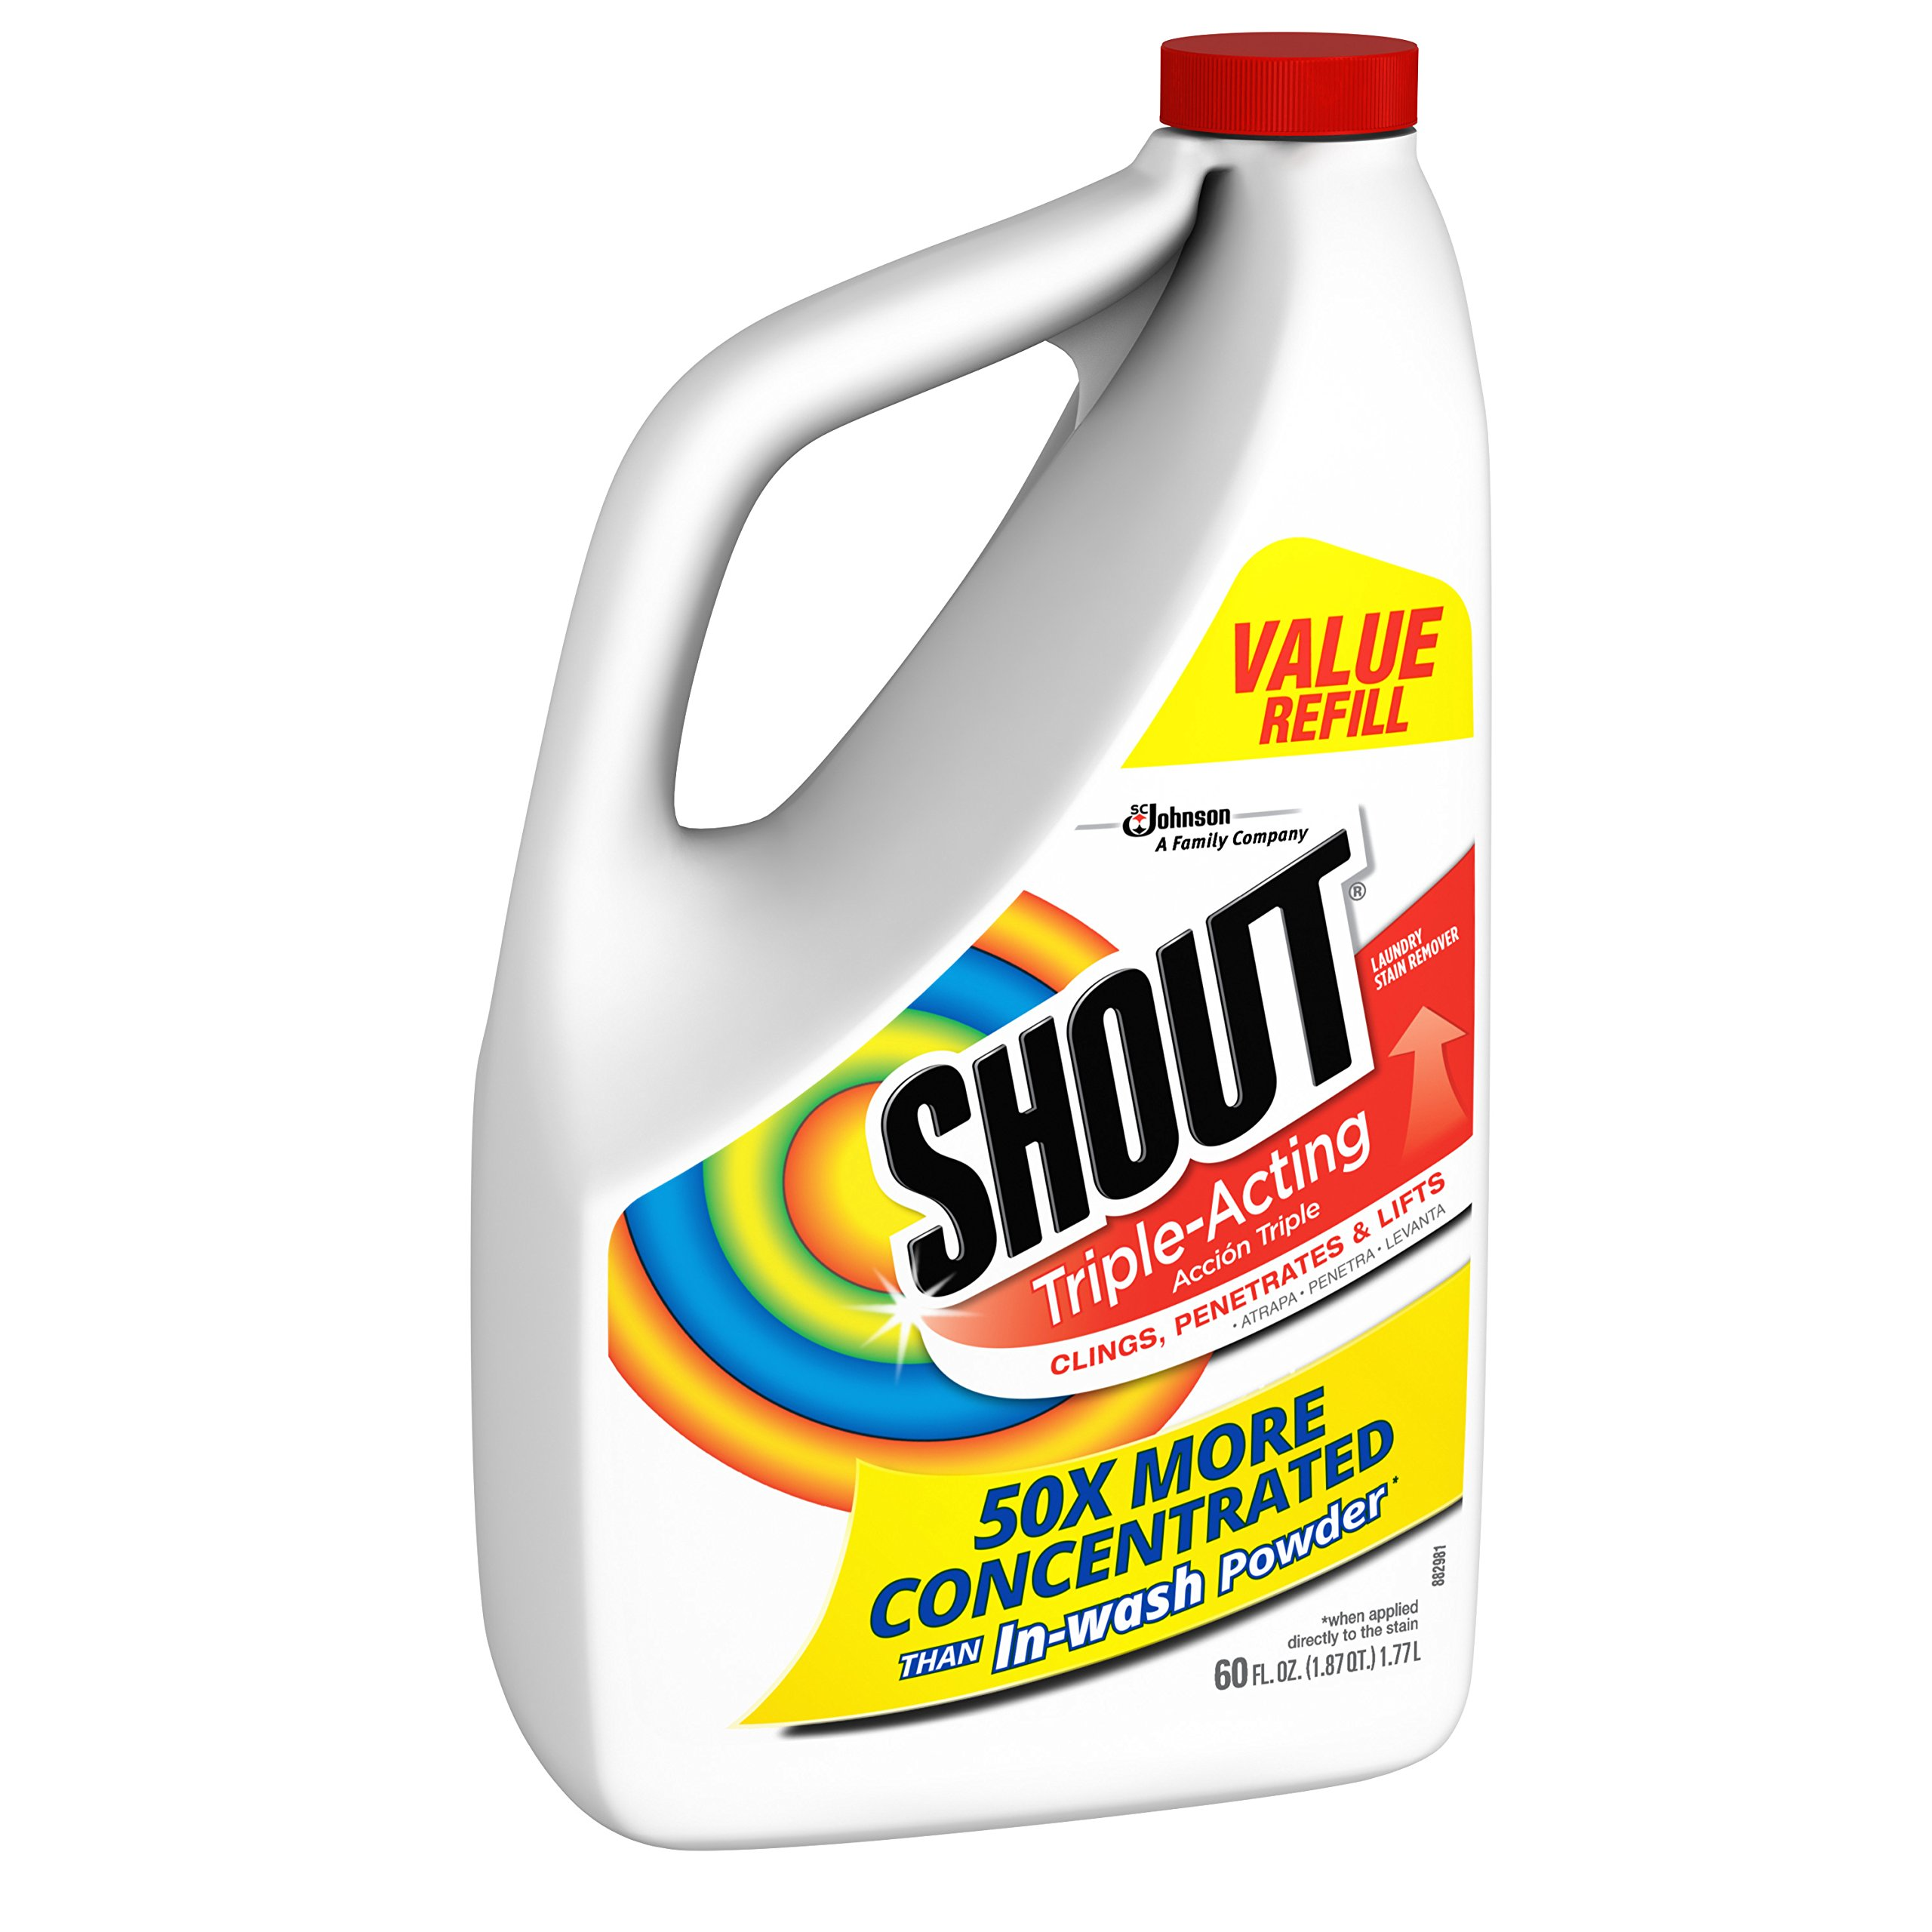 Shout Triple-Acting Liquid Refill 60 fl oz. (Pack of 6) by Shout (Image #3)